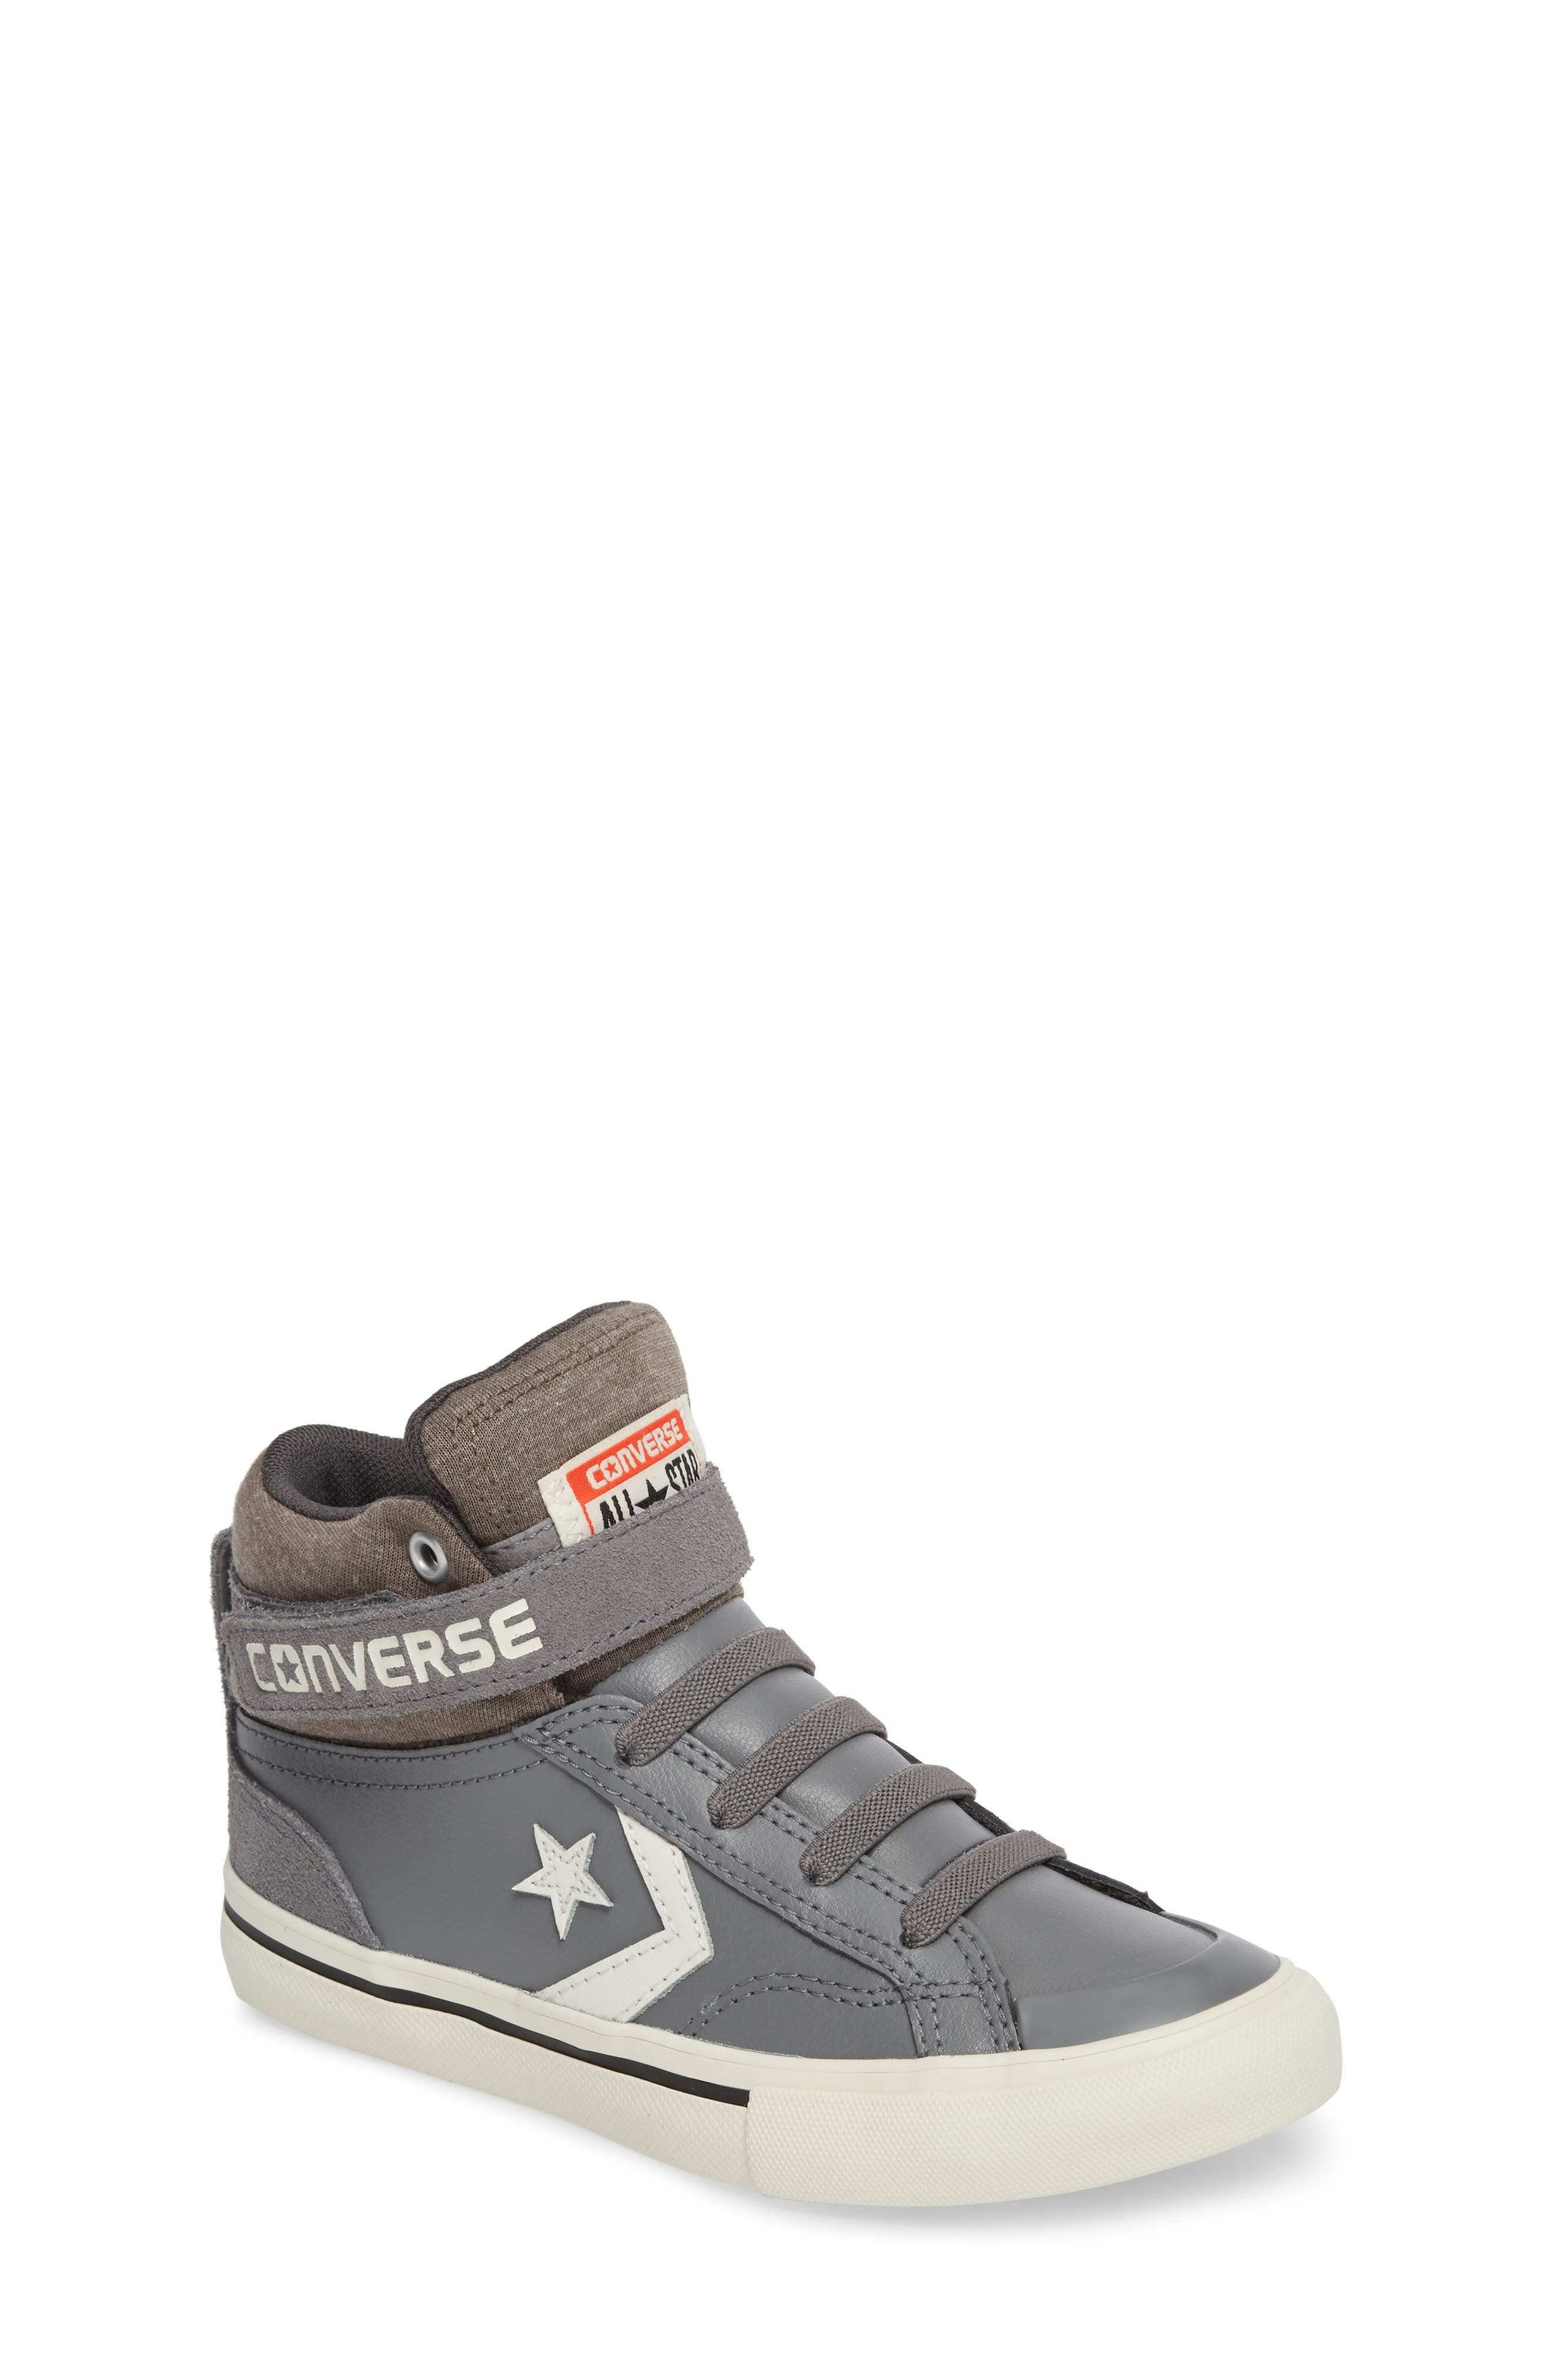 Converse Pro Blaze High Top Sneaker (Baby, Walker, Toddler, Little Kid & Big Kid)